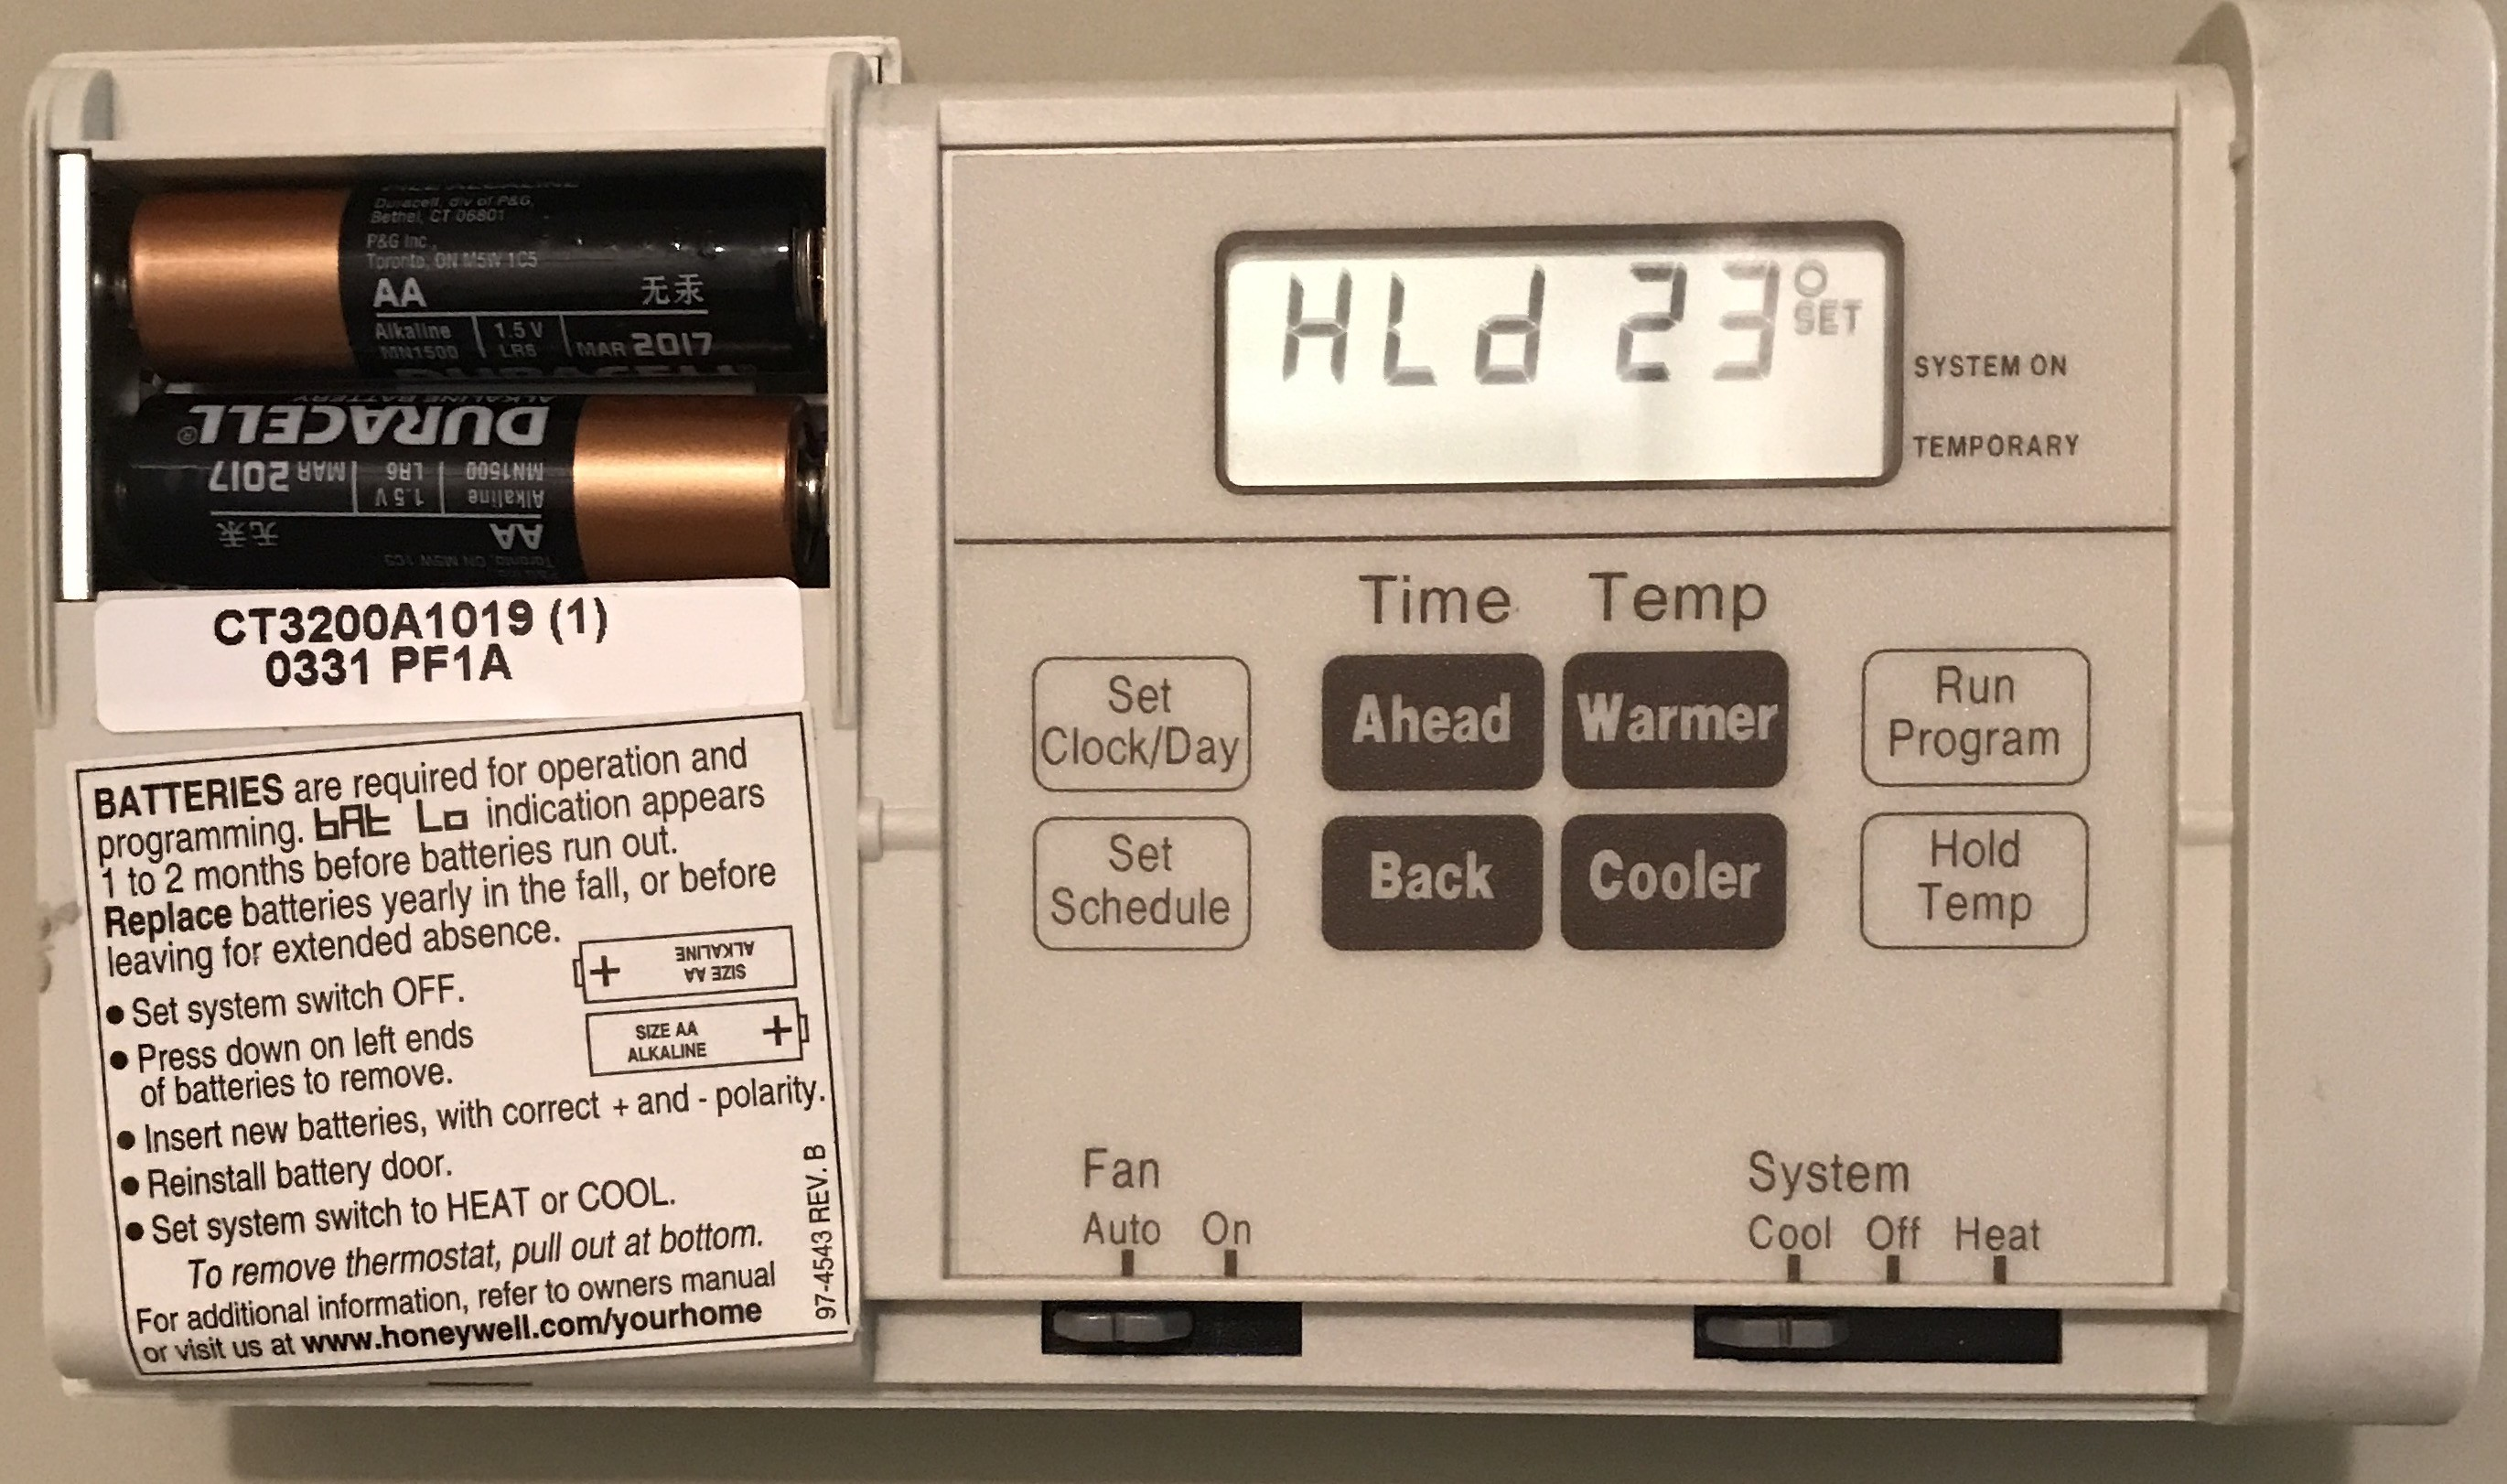 Thermostat control panel: warmer and ahead buttons dont work.